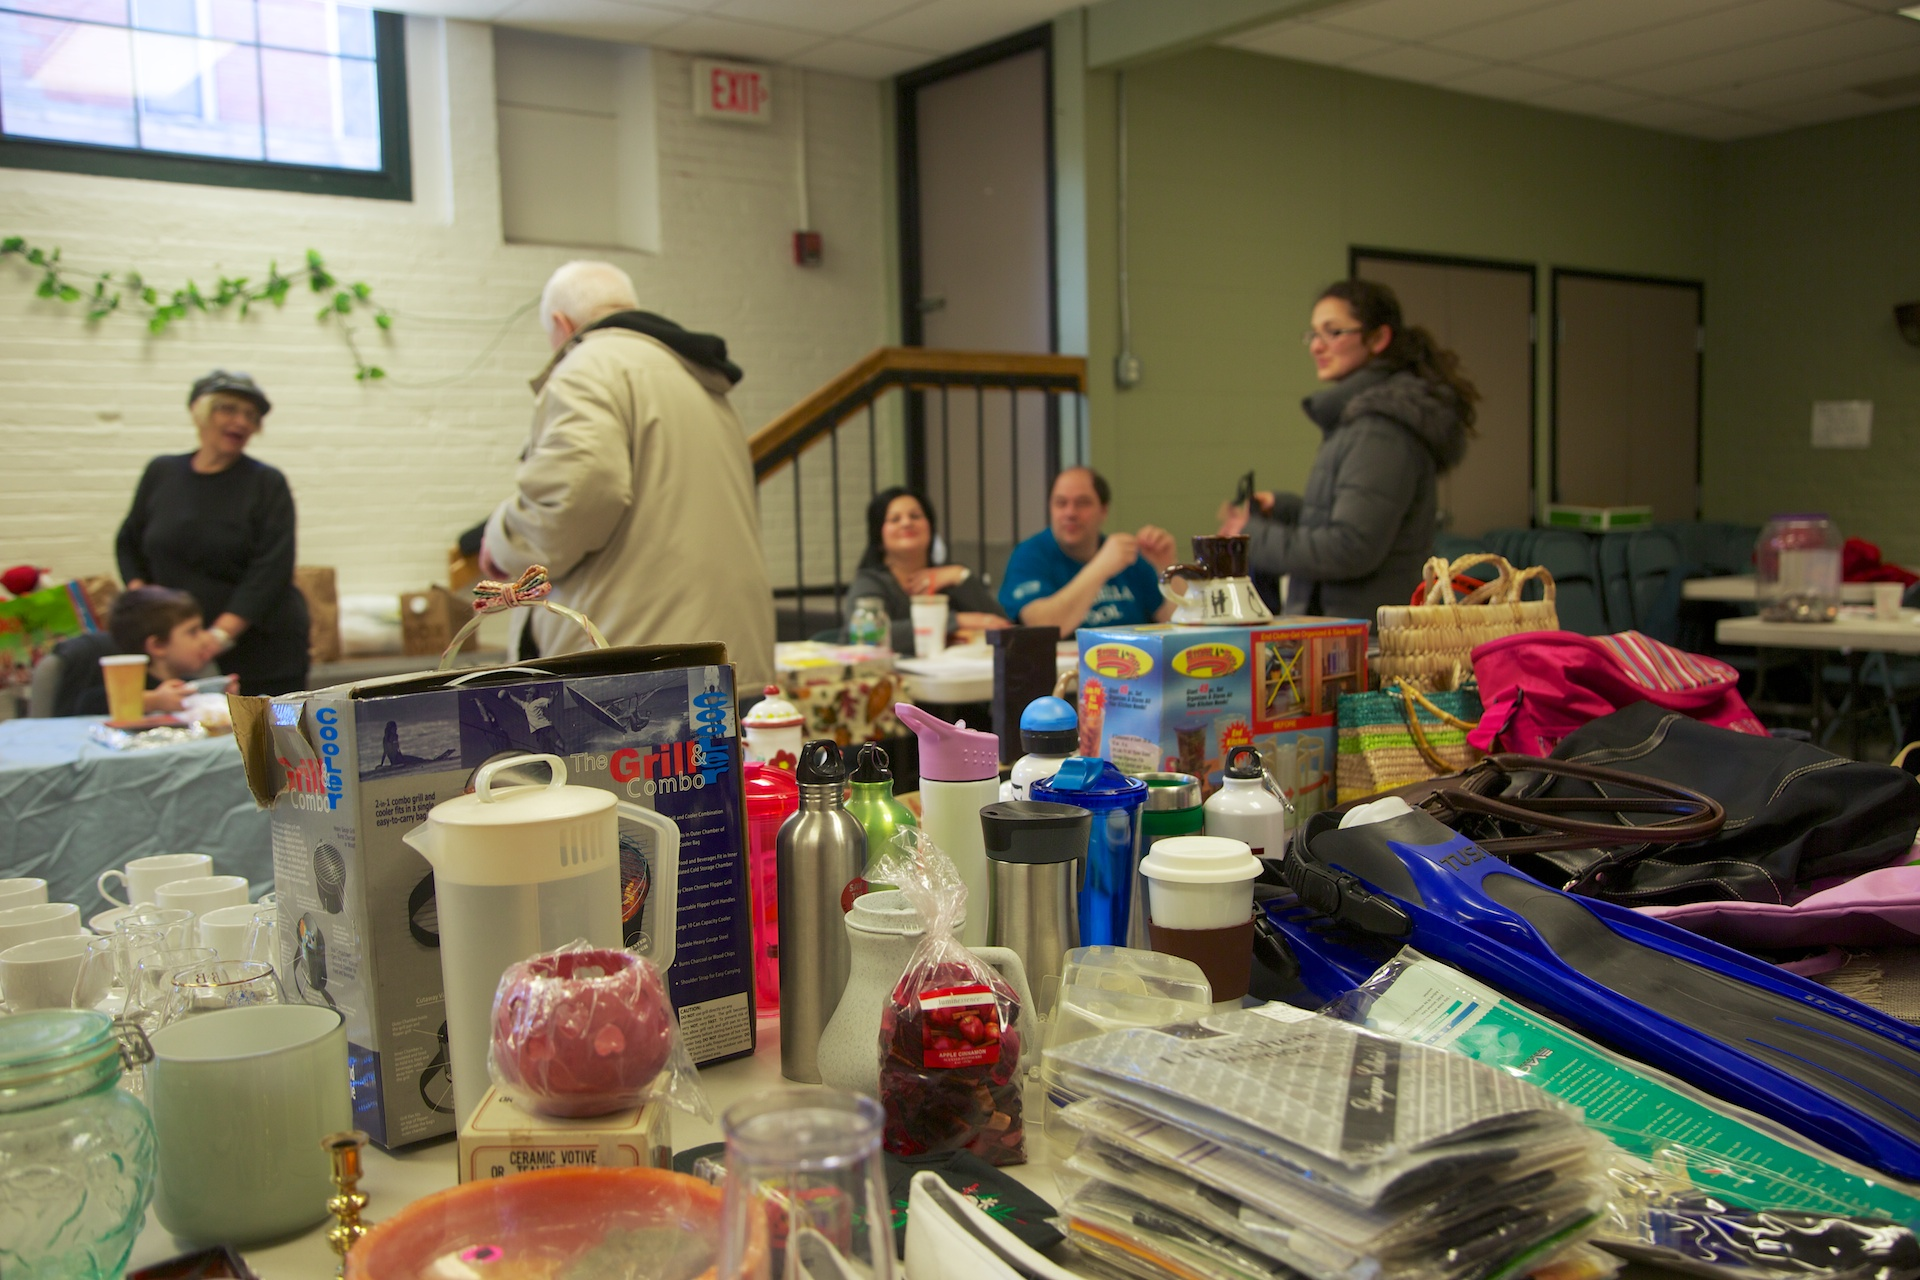 The Flea Market to benefit St. Francis House.